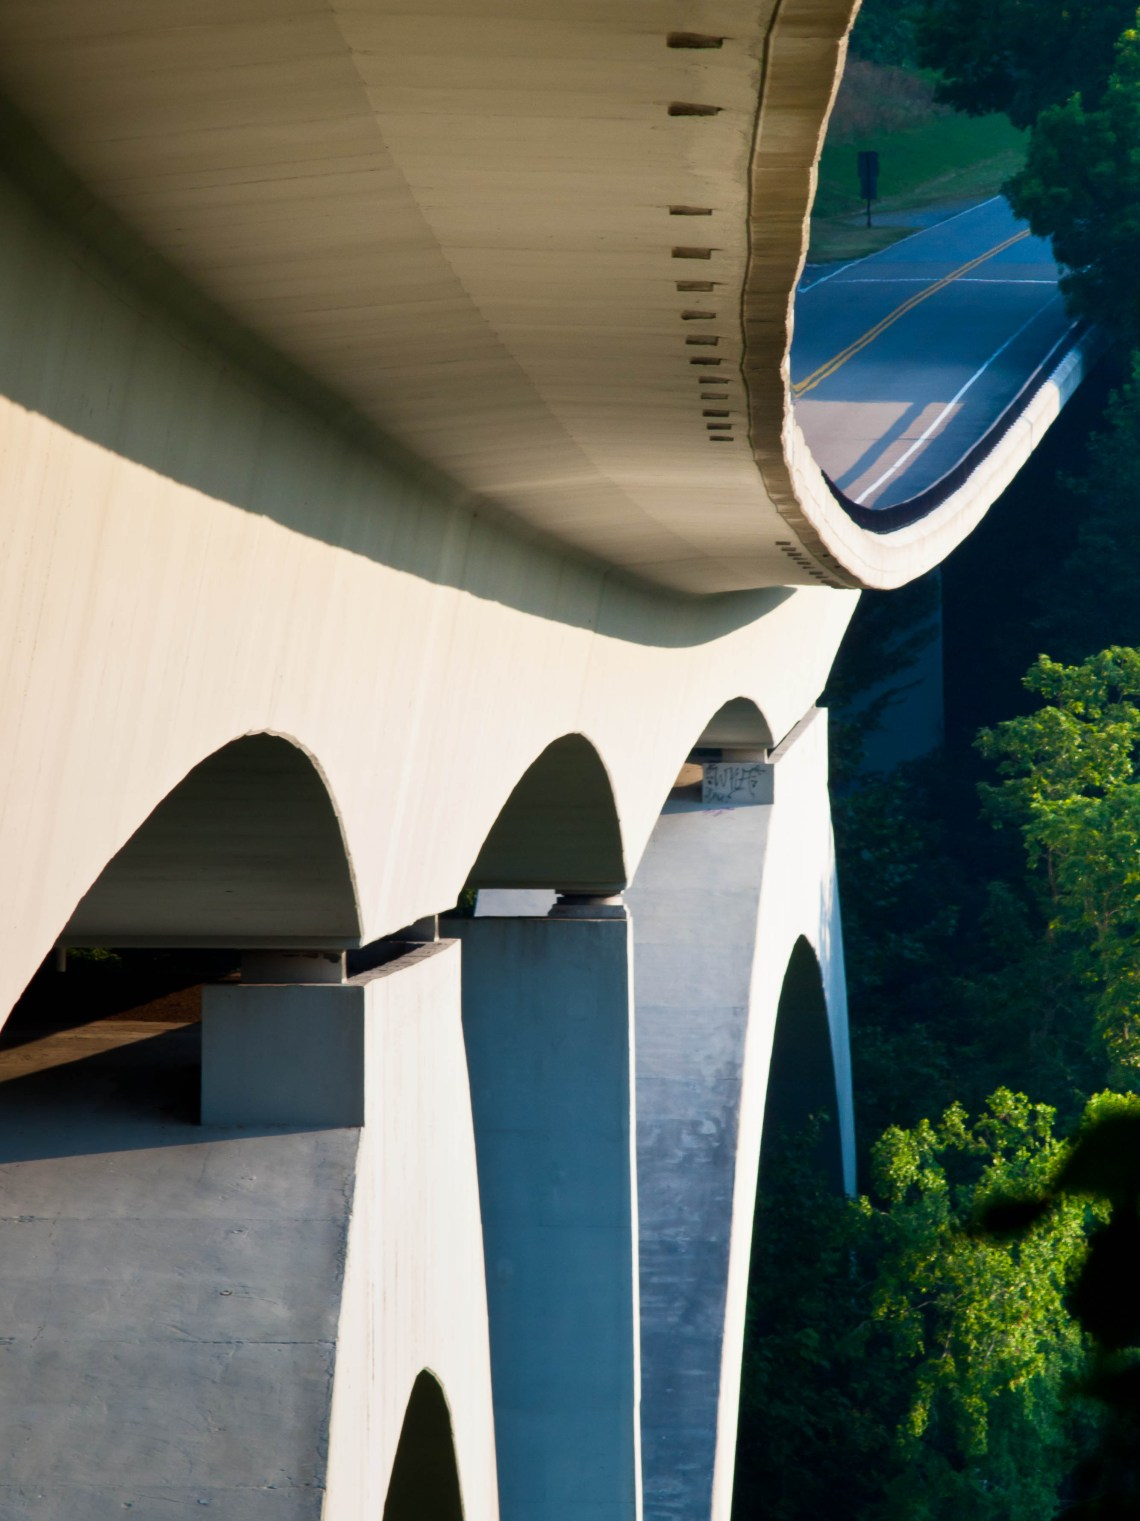 An underside view of the Natchez Trace Parkway Bridge in Franklin, Tennessee